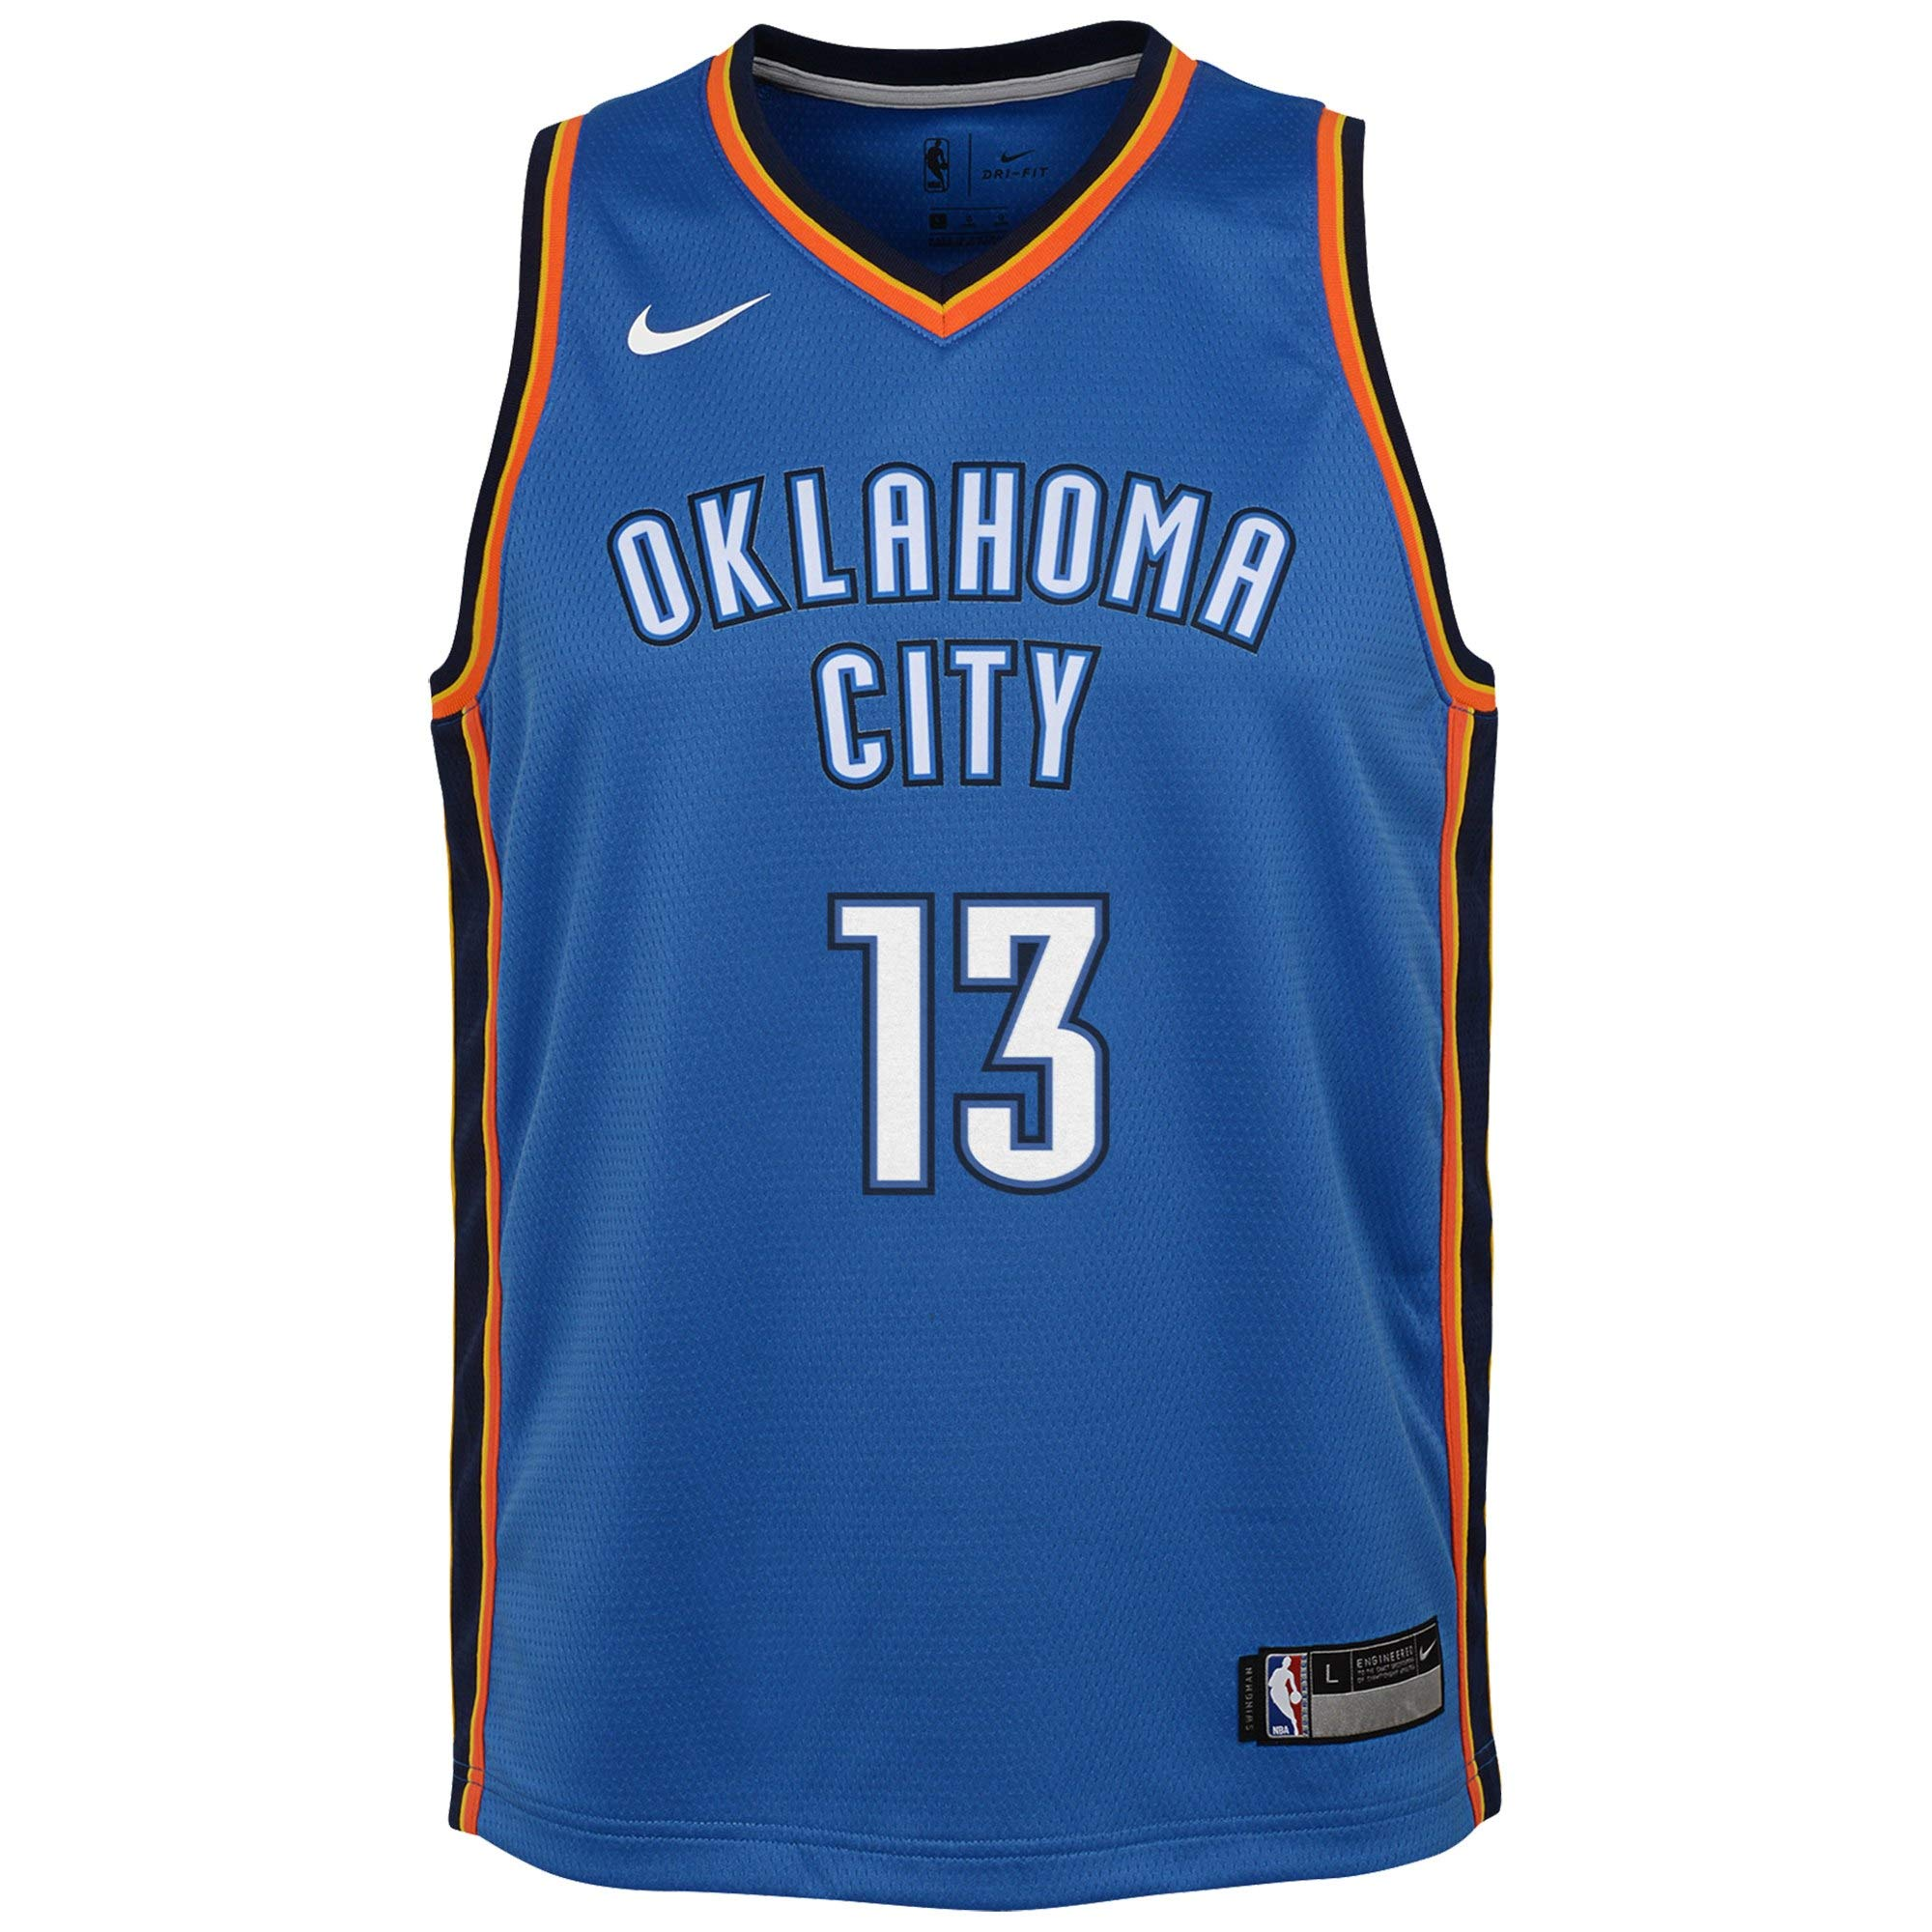 Nike Youth Paul George Oklahoma City Thunder Icon Edition Jersey - Blue (Gold, Youth Large (14-16)) by Nike (Image #2)